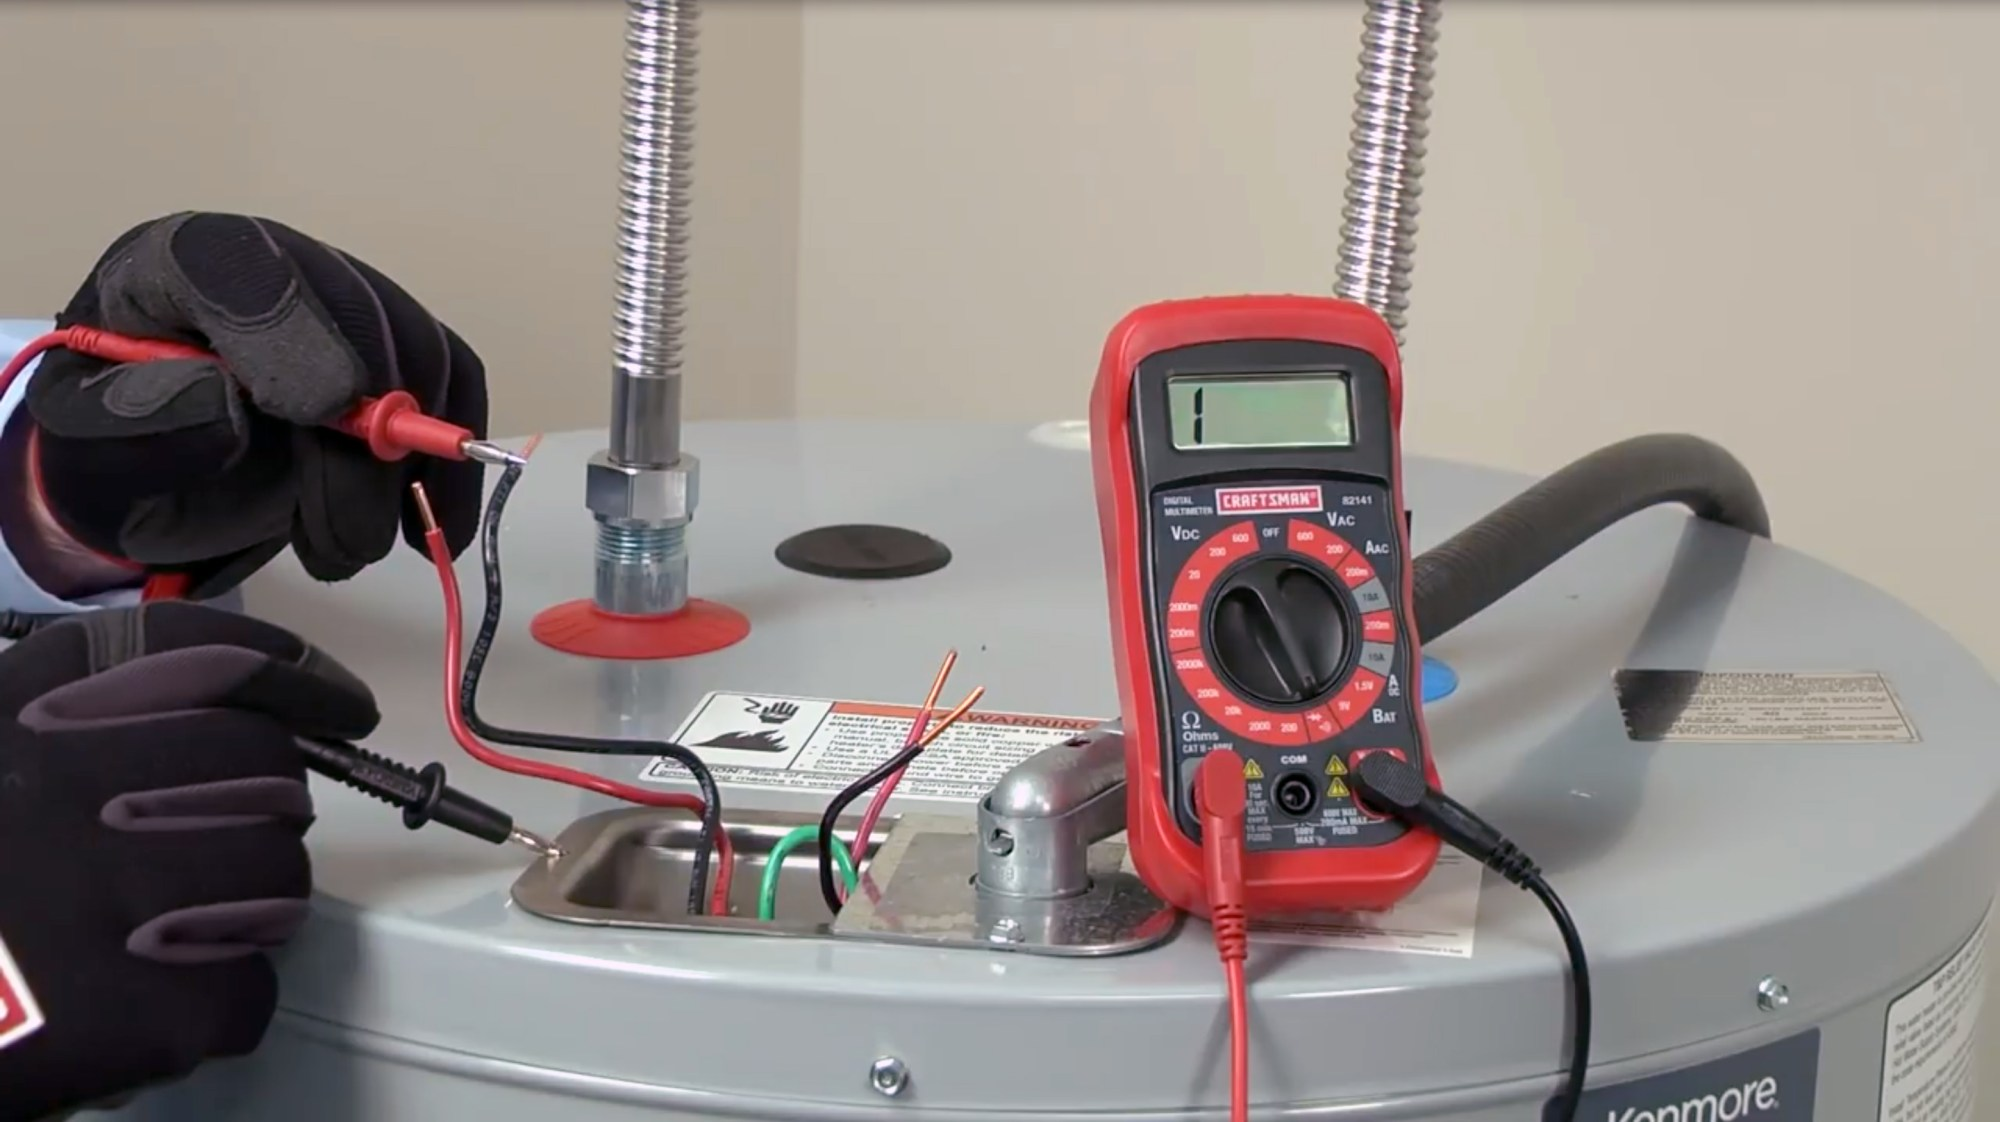 hight resolution of no hot water electric water heater troubleshooting video water heater tips and tricks